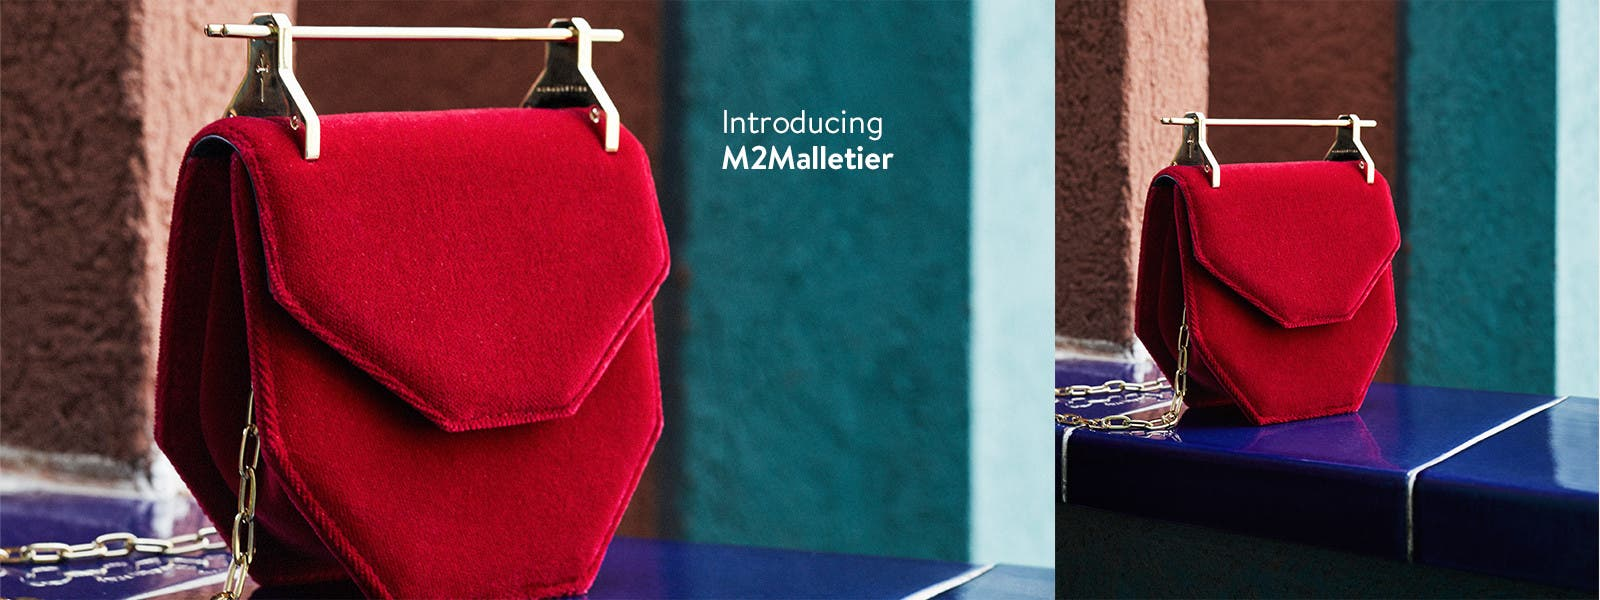 Introducing M2Malletier handbags, online now.